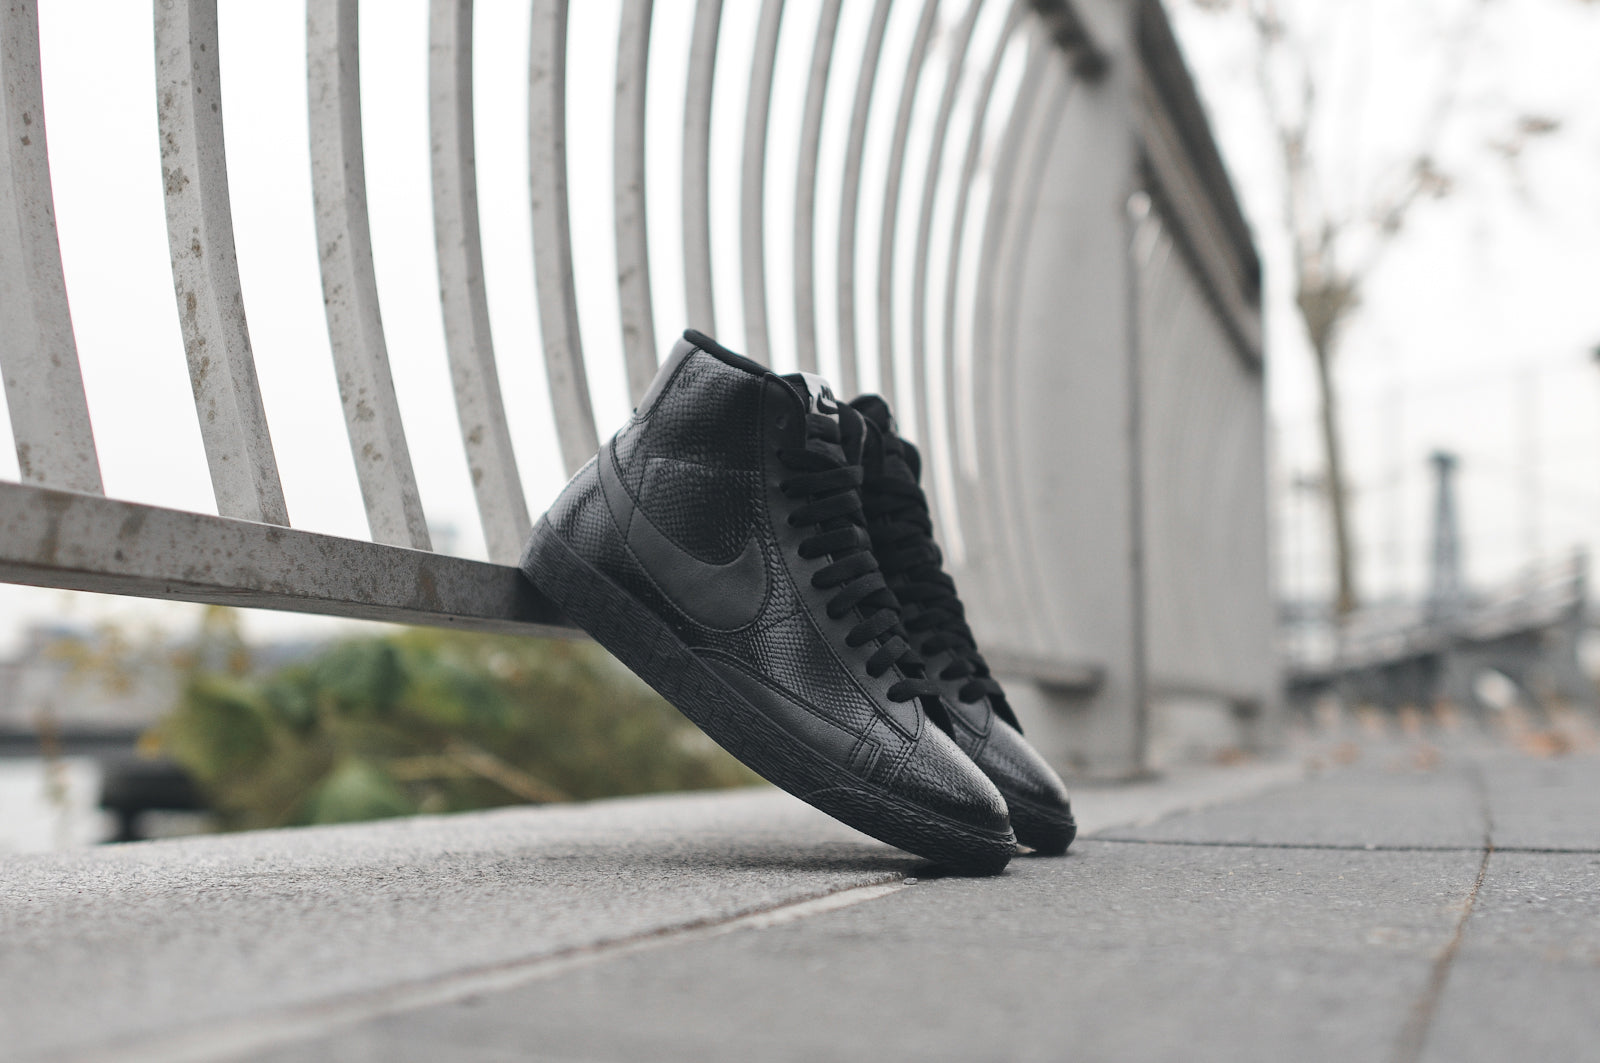 huge selection of d0a69 84e43 ... coupon code nike wmns blazer mid prm black snake kith nyc d914f 2d323